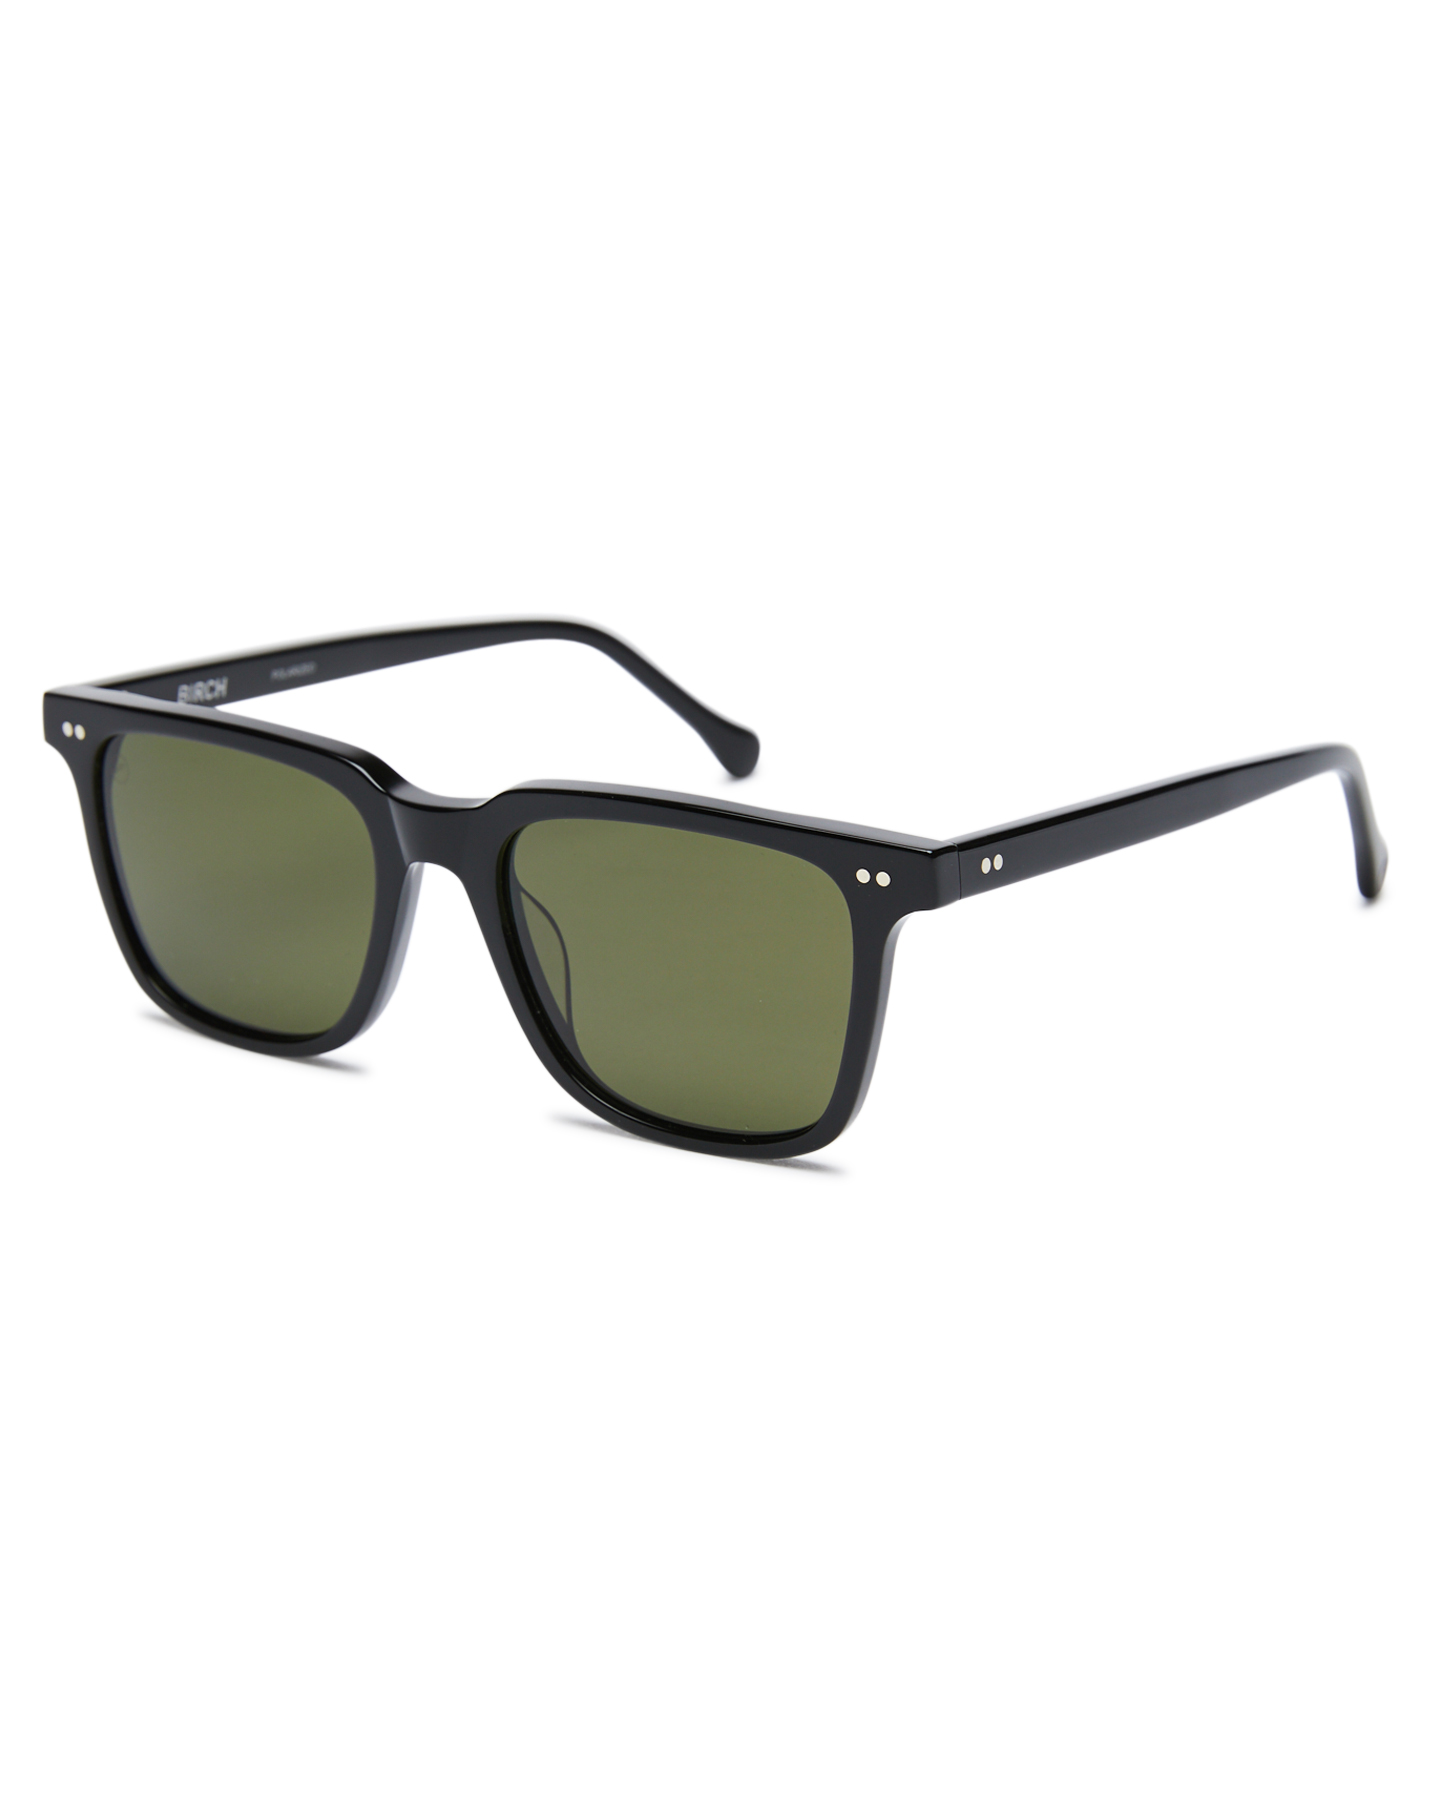 Electric Birch Polarized Sunglasses Gloss Black Grey